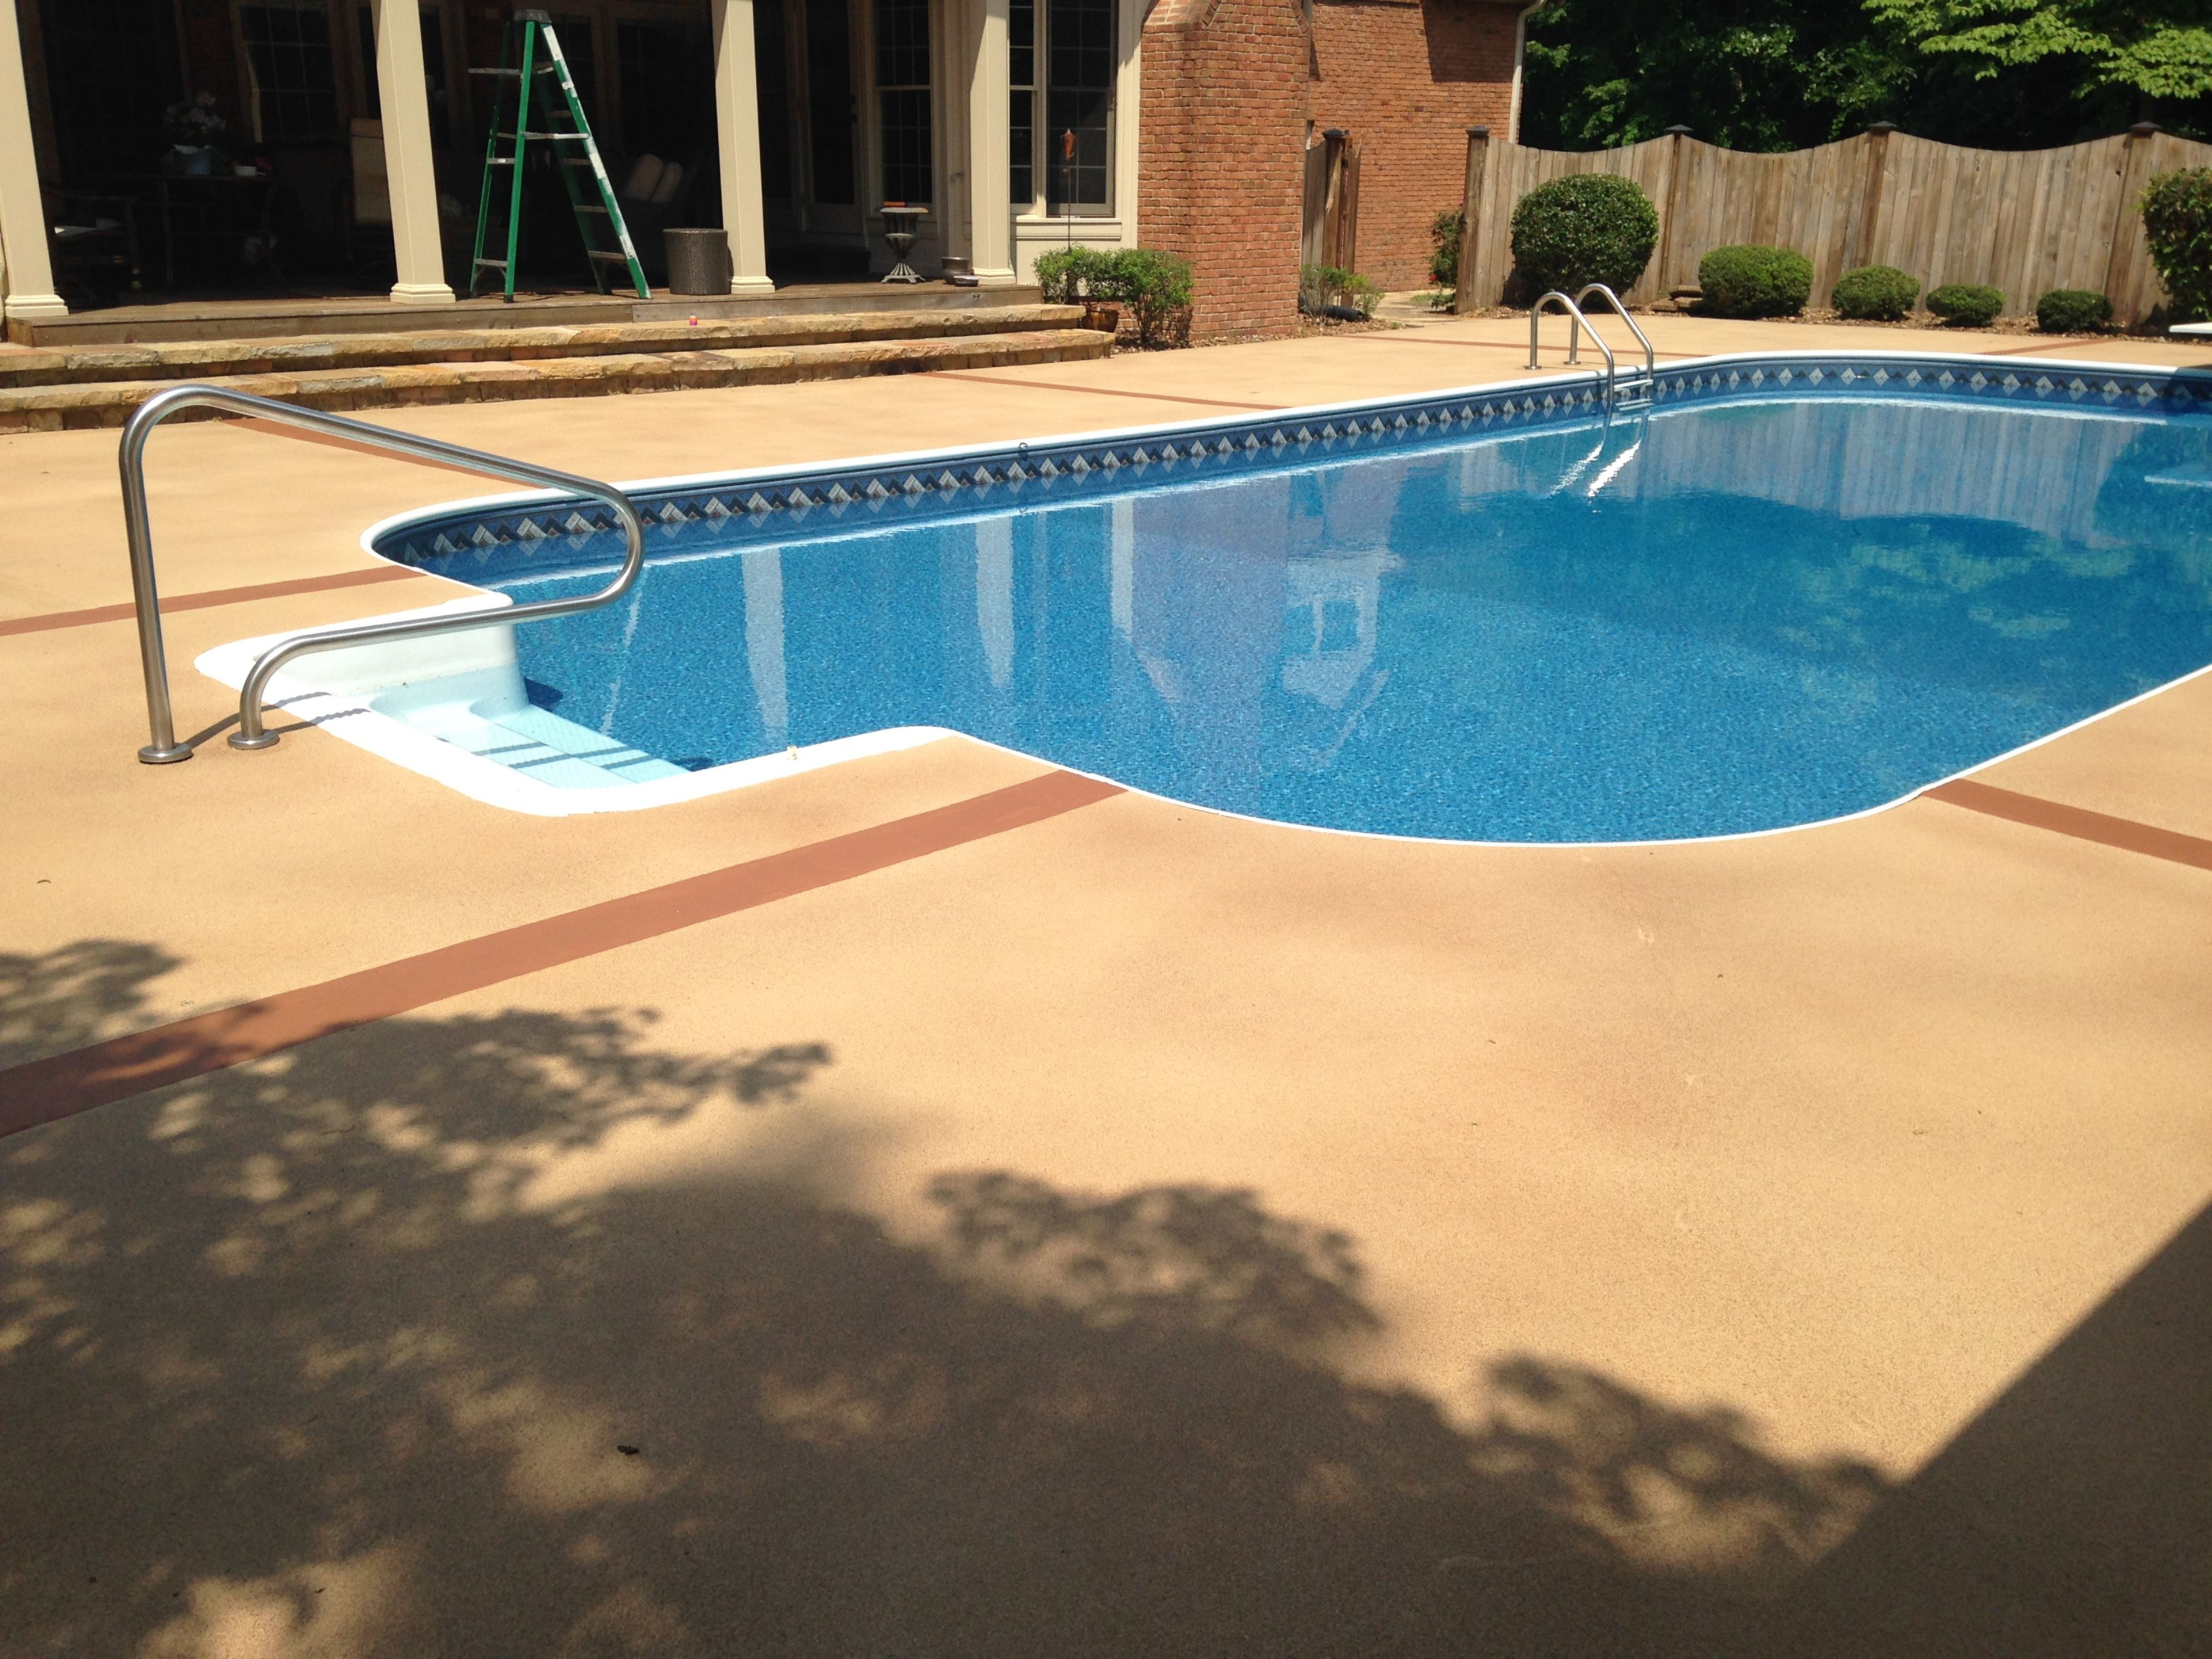 Brick Pool Deck Pool Deck With Base Coat Of Tan And A Distressed Finish In Natural